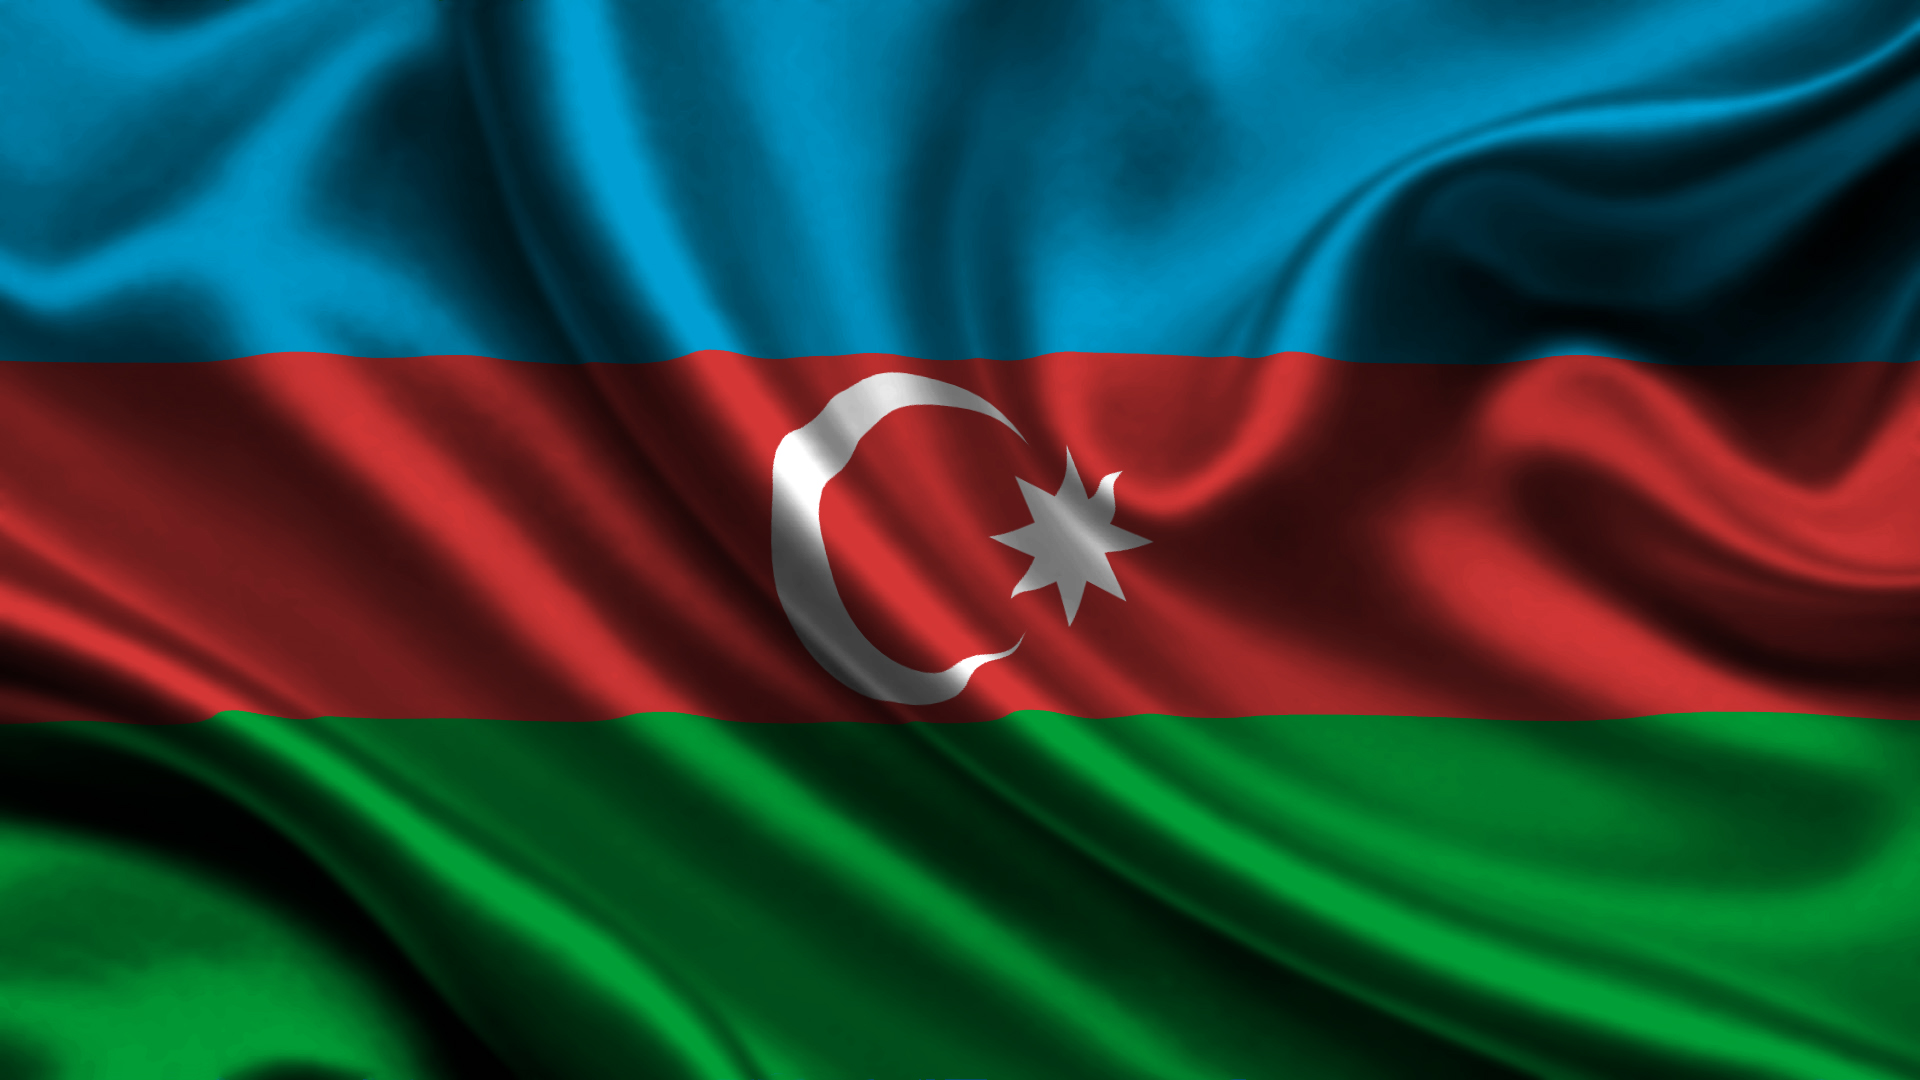 3 flag of Azerbaijan HD Wallpapers Background Images   Wallpaper 1920x1080